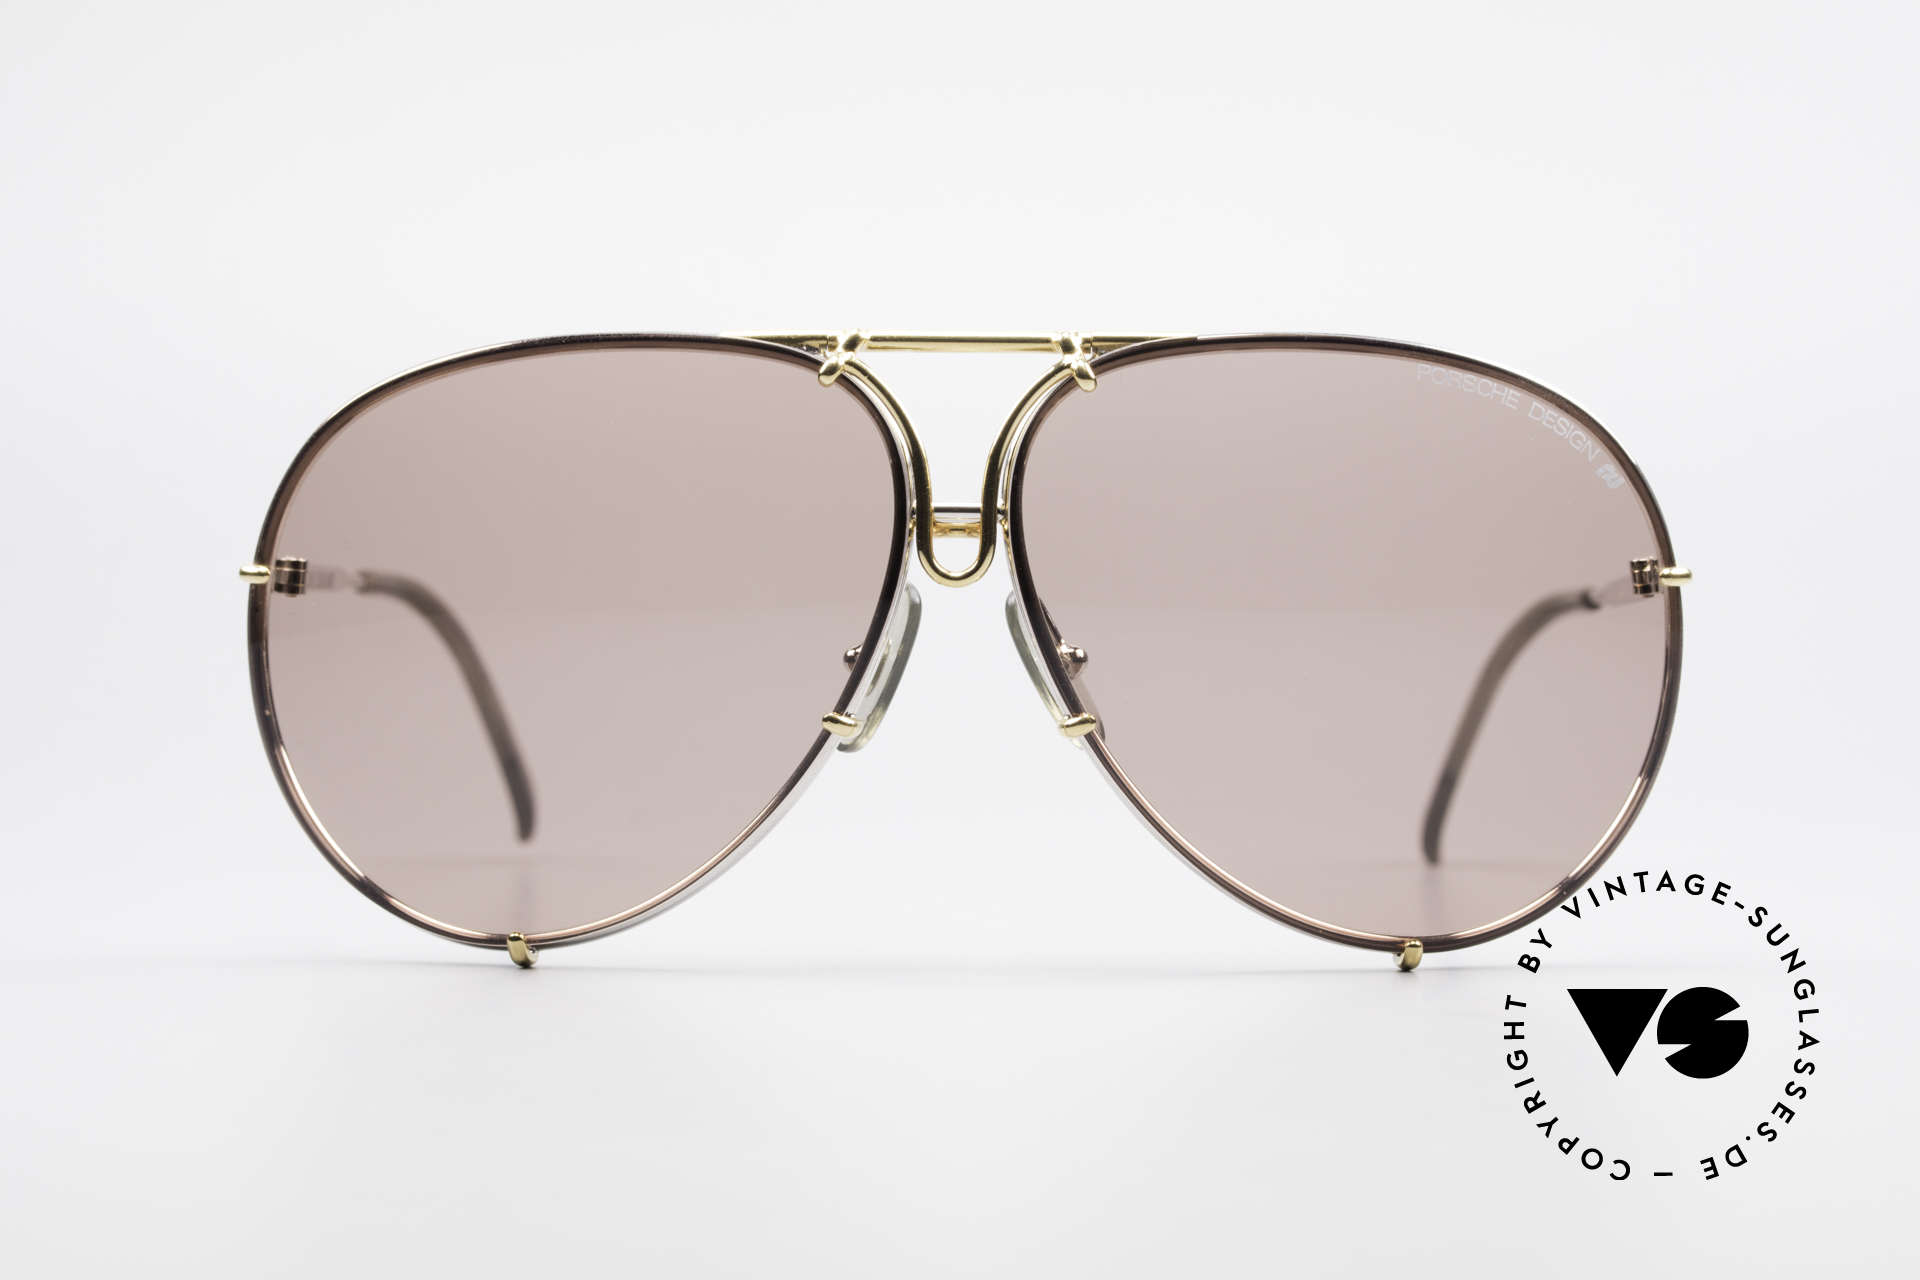 Porsche 5623 Johnny Depp Black Mass Shades, model 5623 = 80's SMALL size (MEDIUM size, today), Made for Men and Women